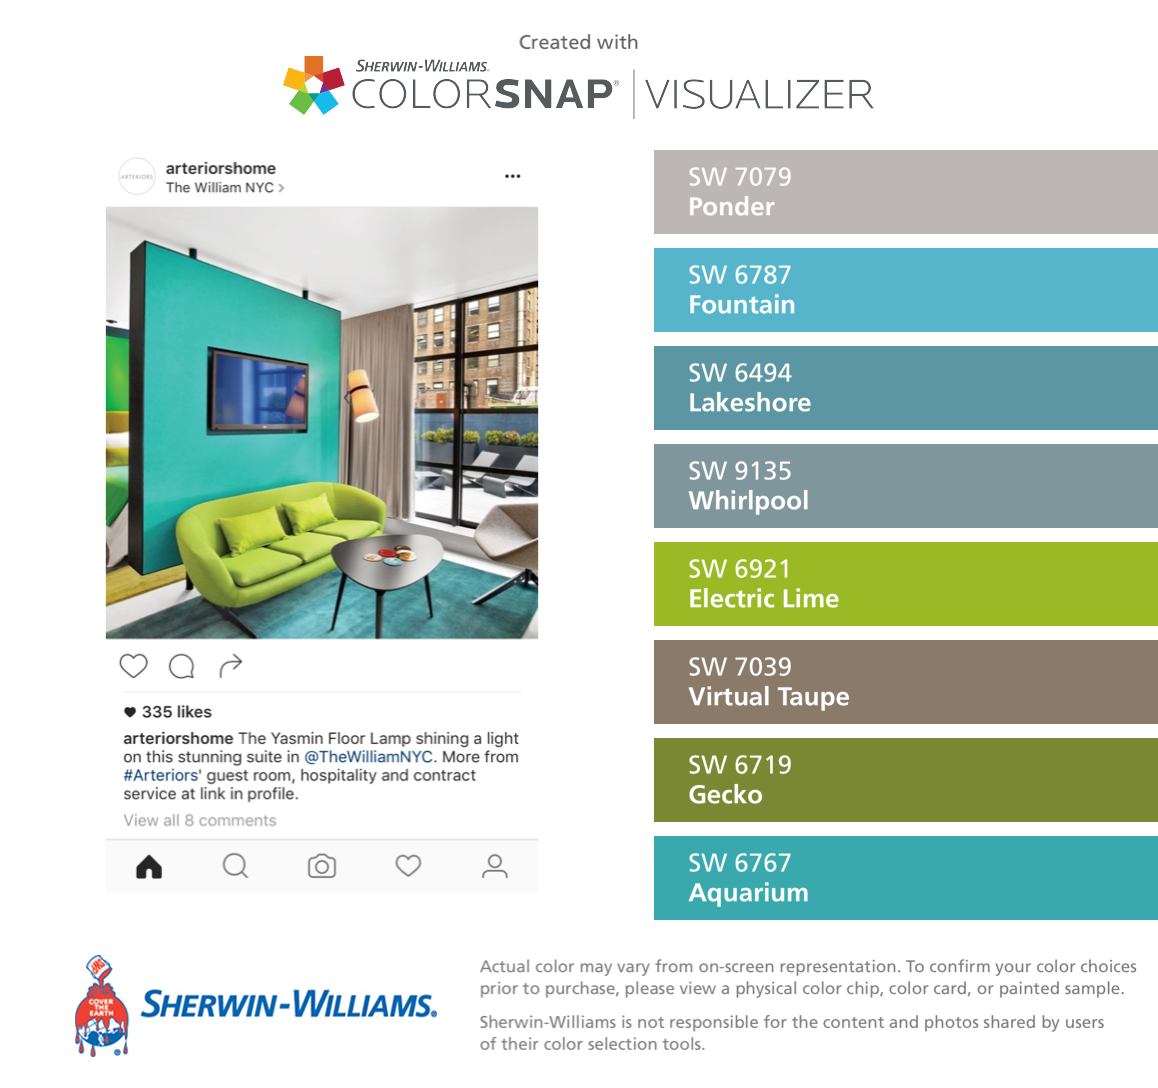 I Found These Colors With Colorsnap Visualizer For Iphone By Sherwin Williams Ponder Sw 7079 Sherwin Williams Interior Design Paint Matching Paint Colors